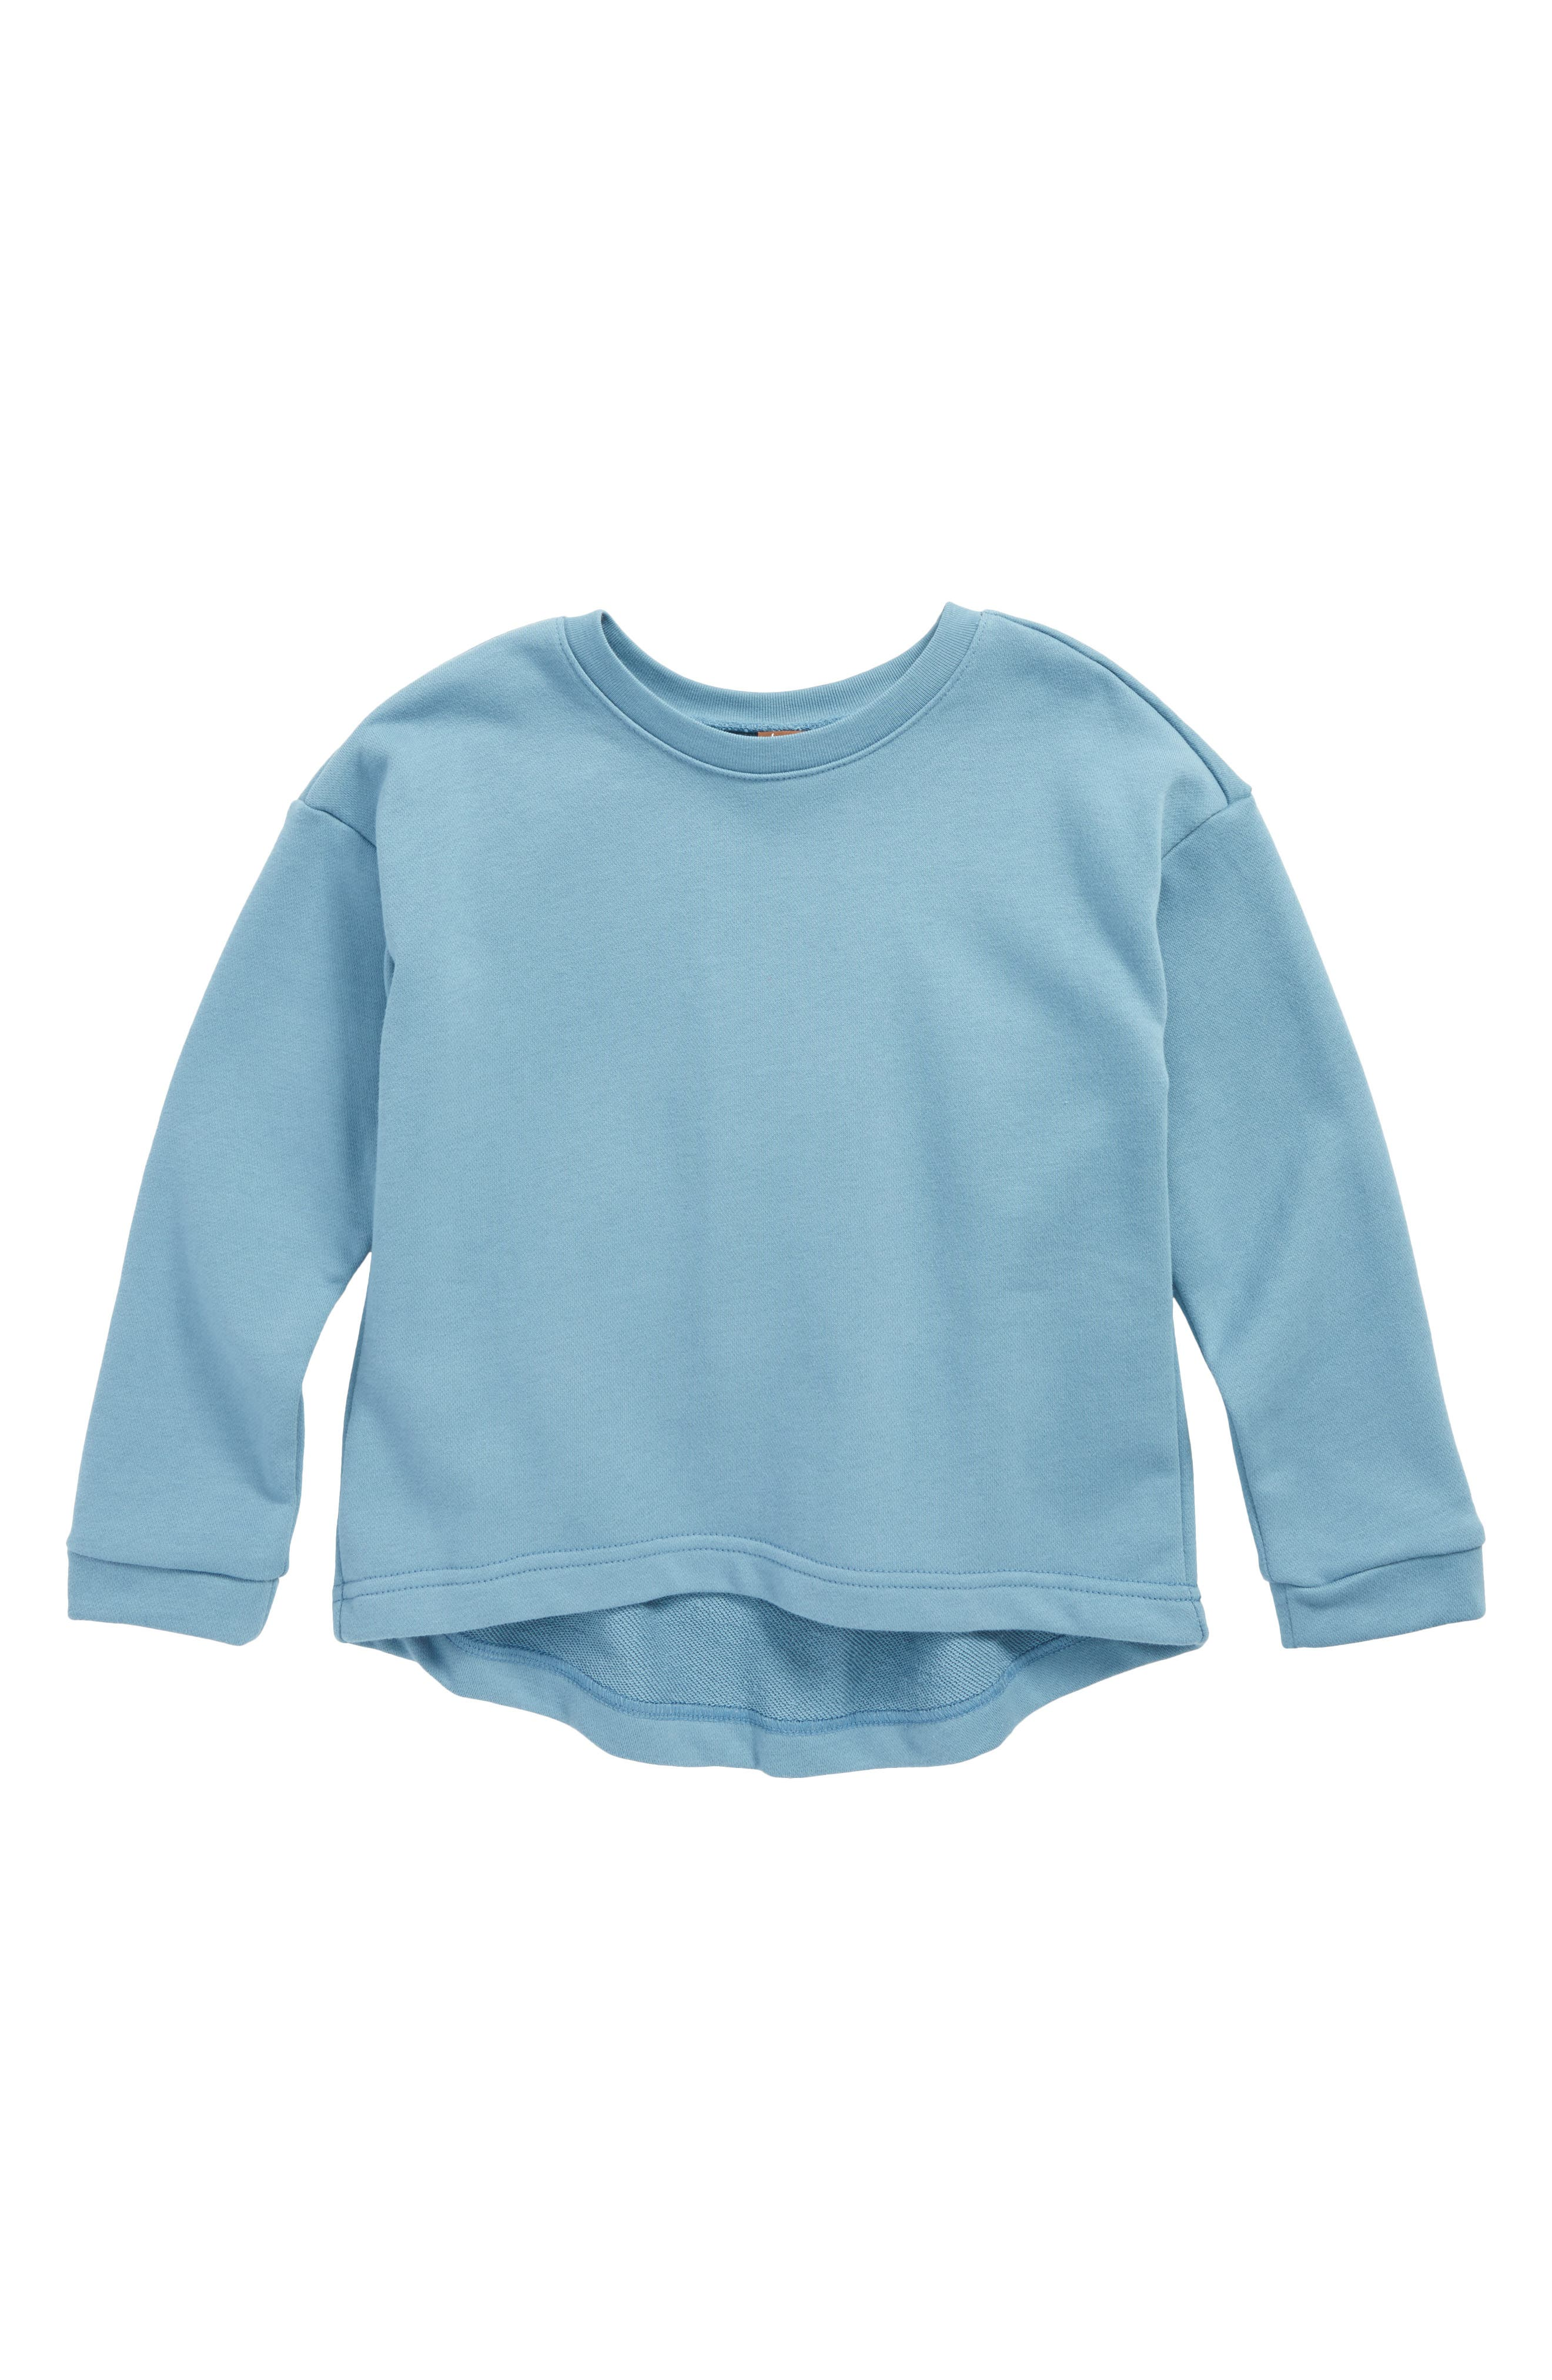 Fairy Wings Pullover,                             Main thumbnail 1, color,